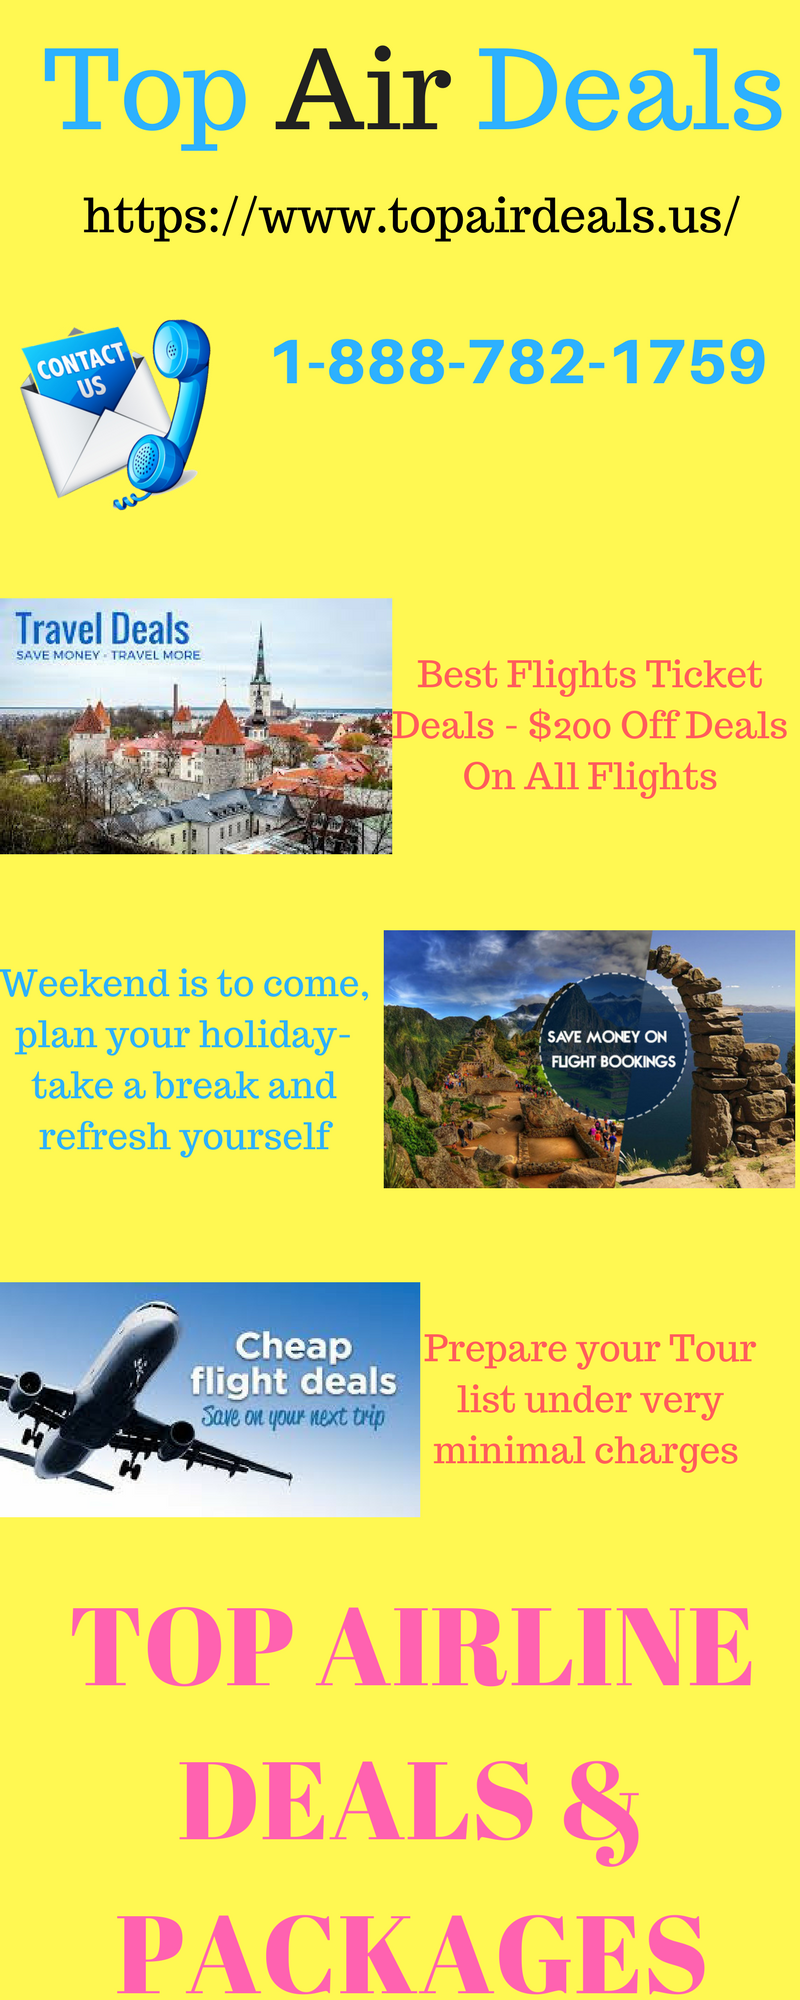 Check Latest offers on flight ticket booking at